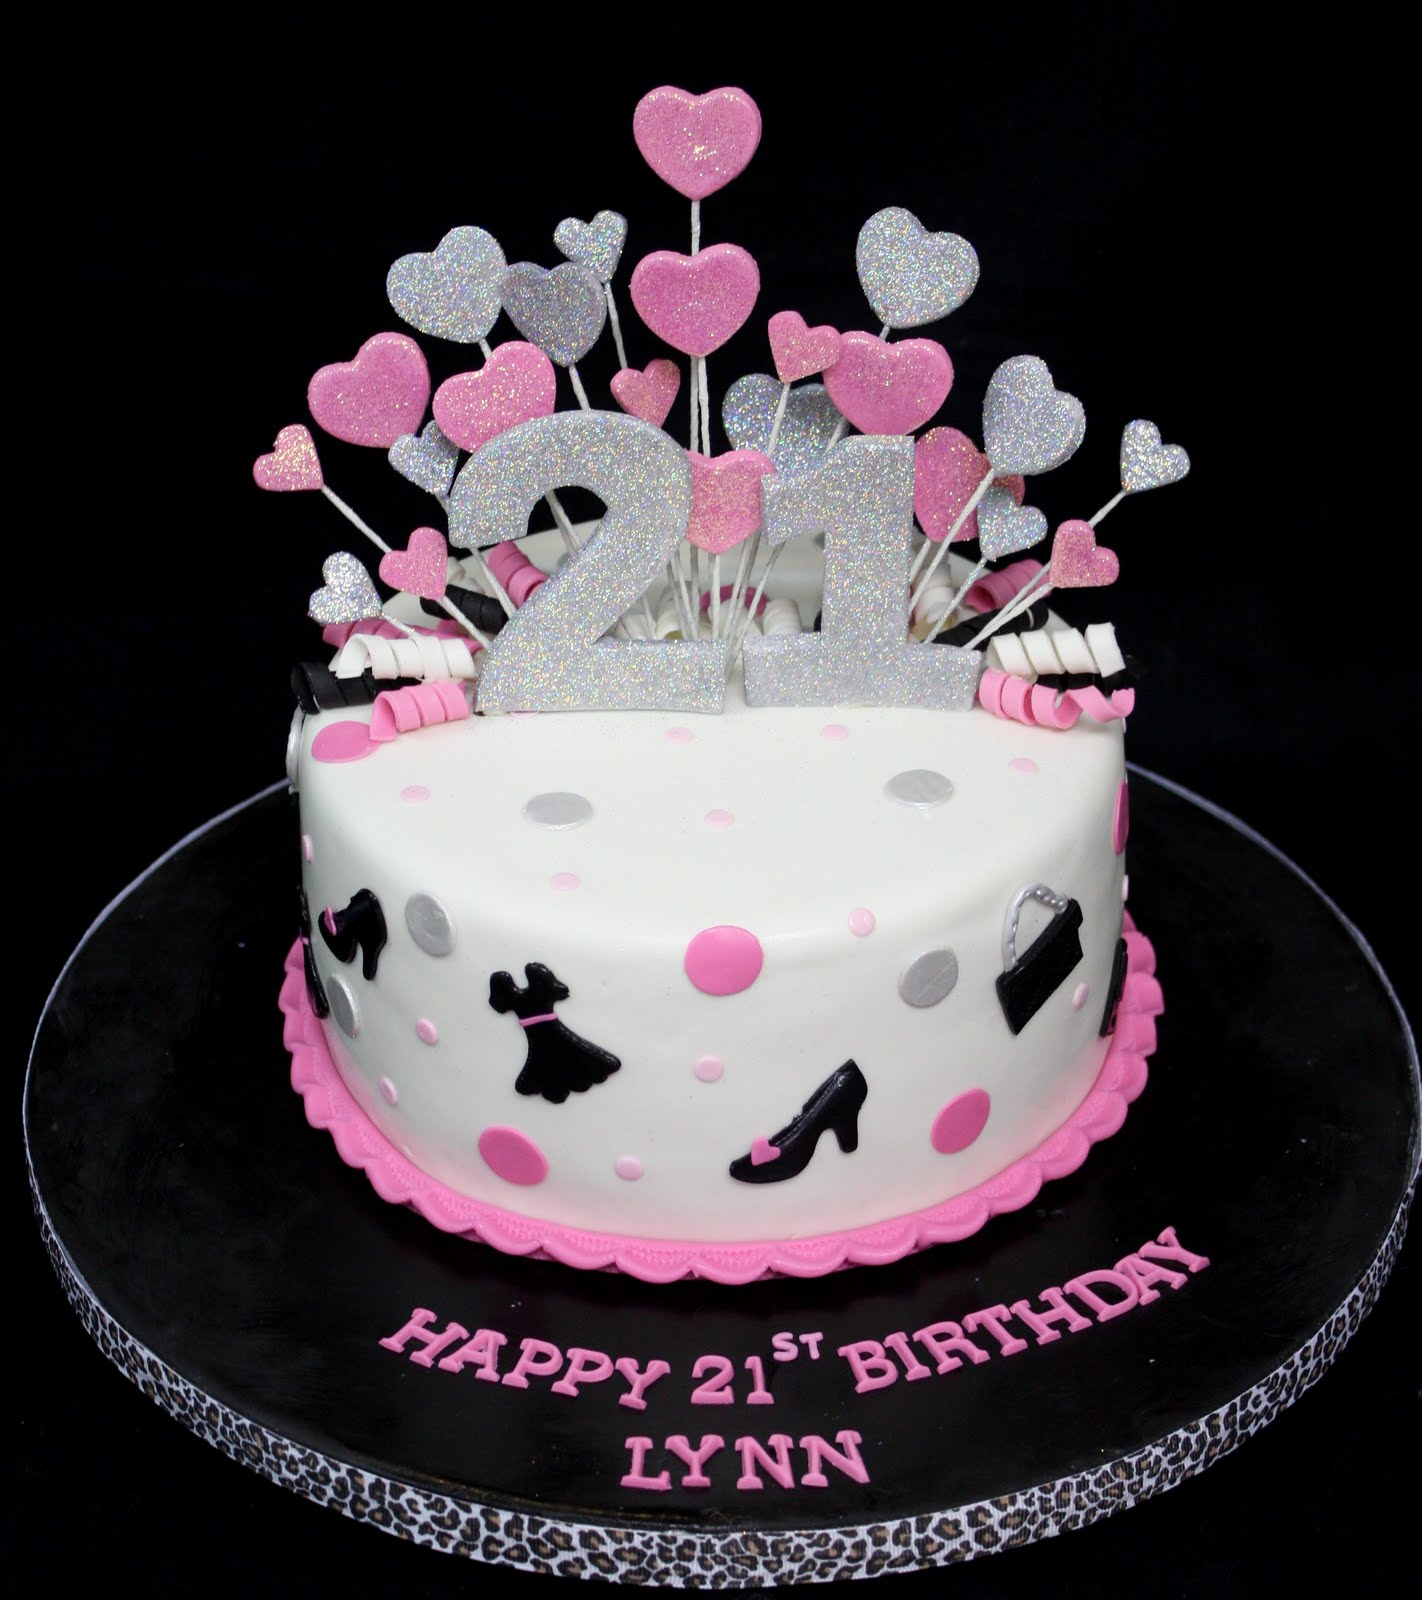 Cake Designs And Pictures : 21st Birthday Cakes   Decoration Ideas Little Birthday Cakes